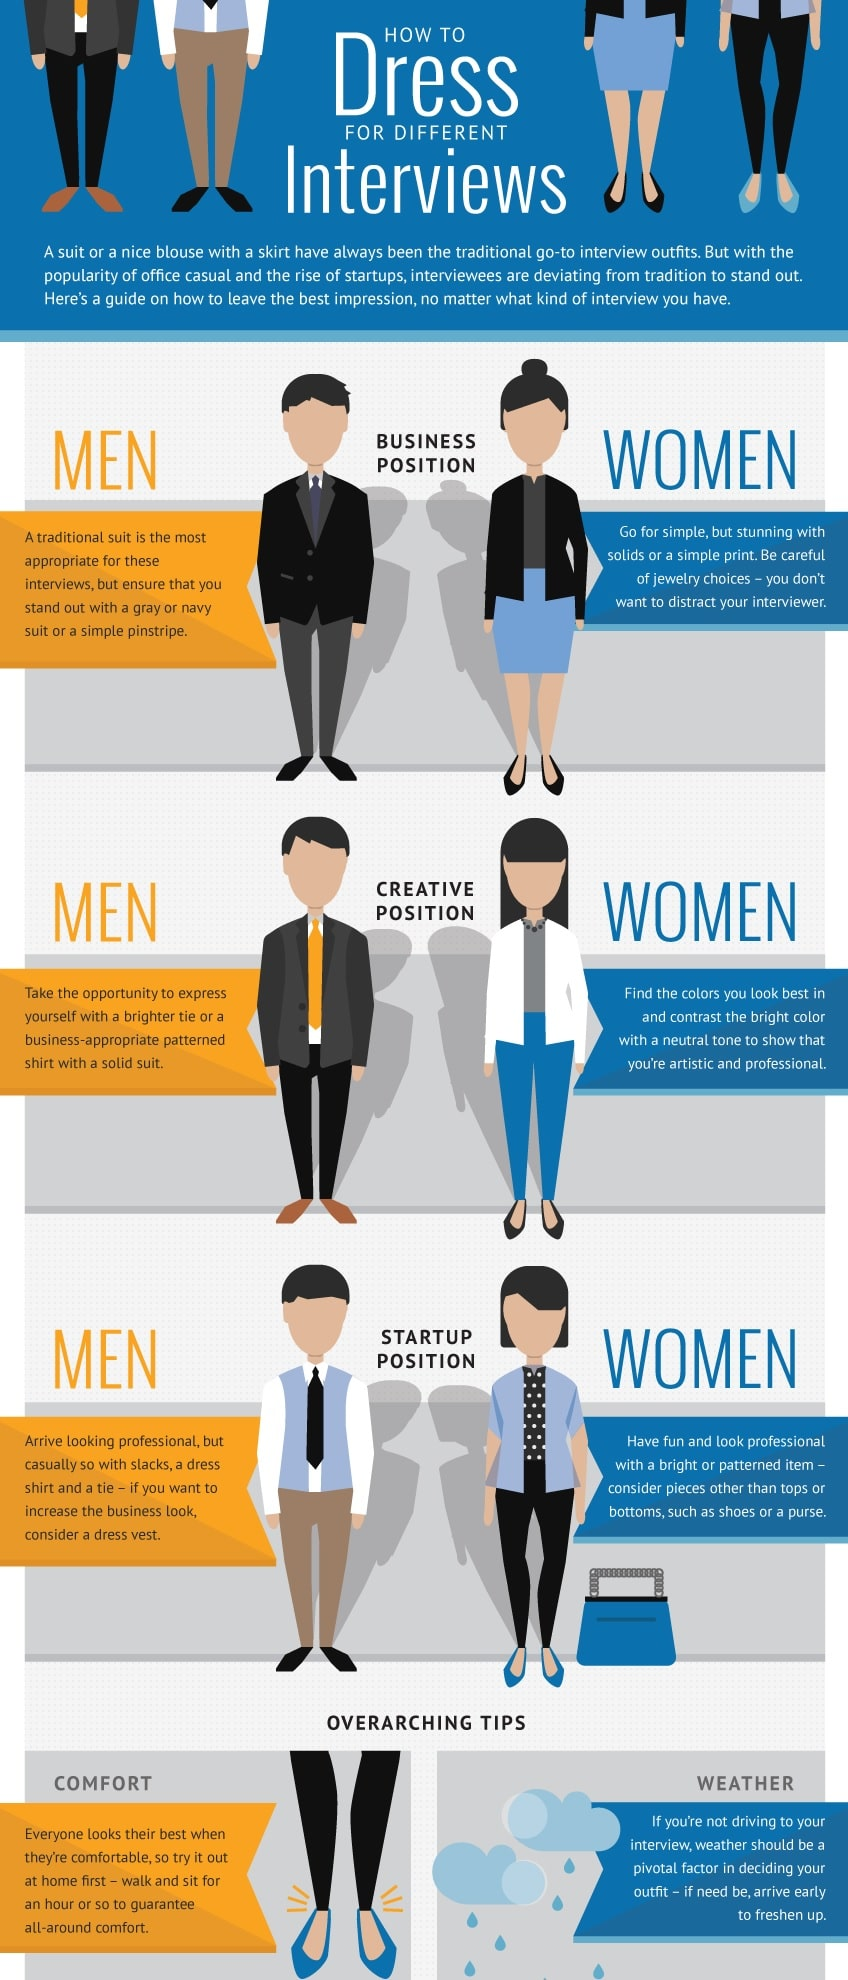 Dressing For an Interview Male/Female Tips